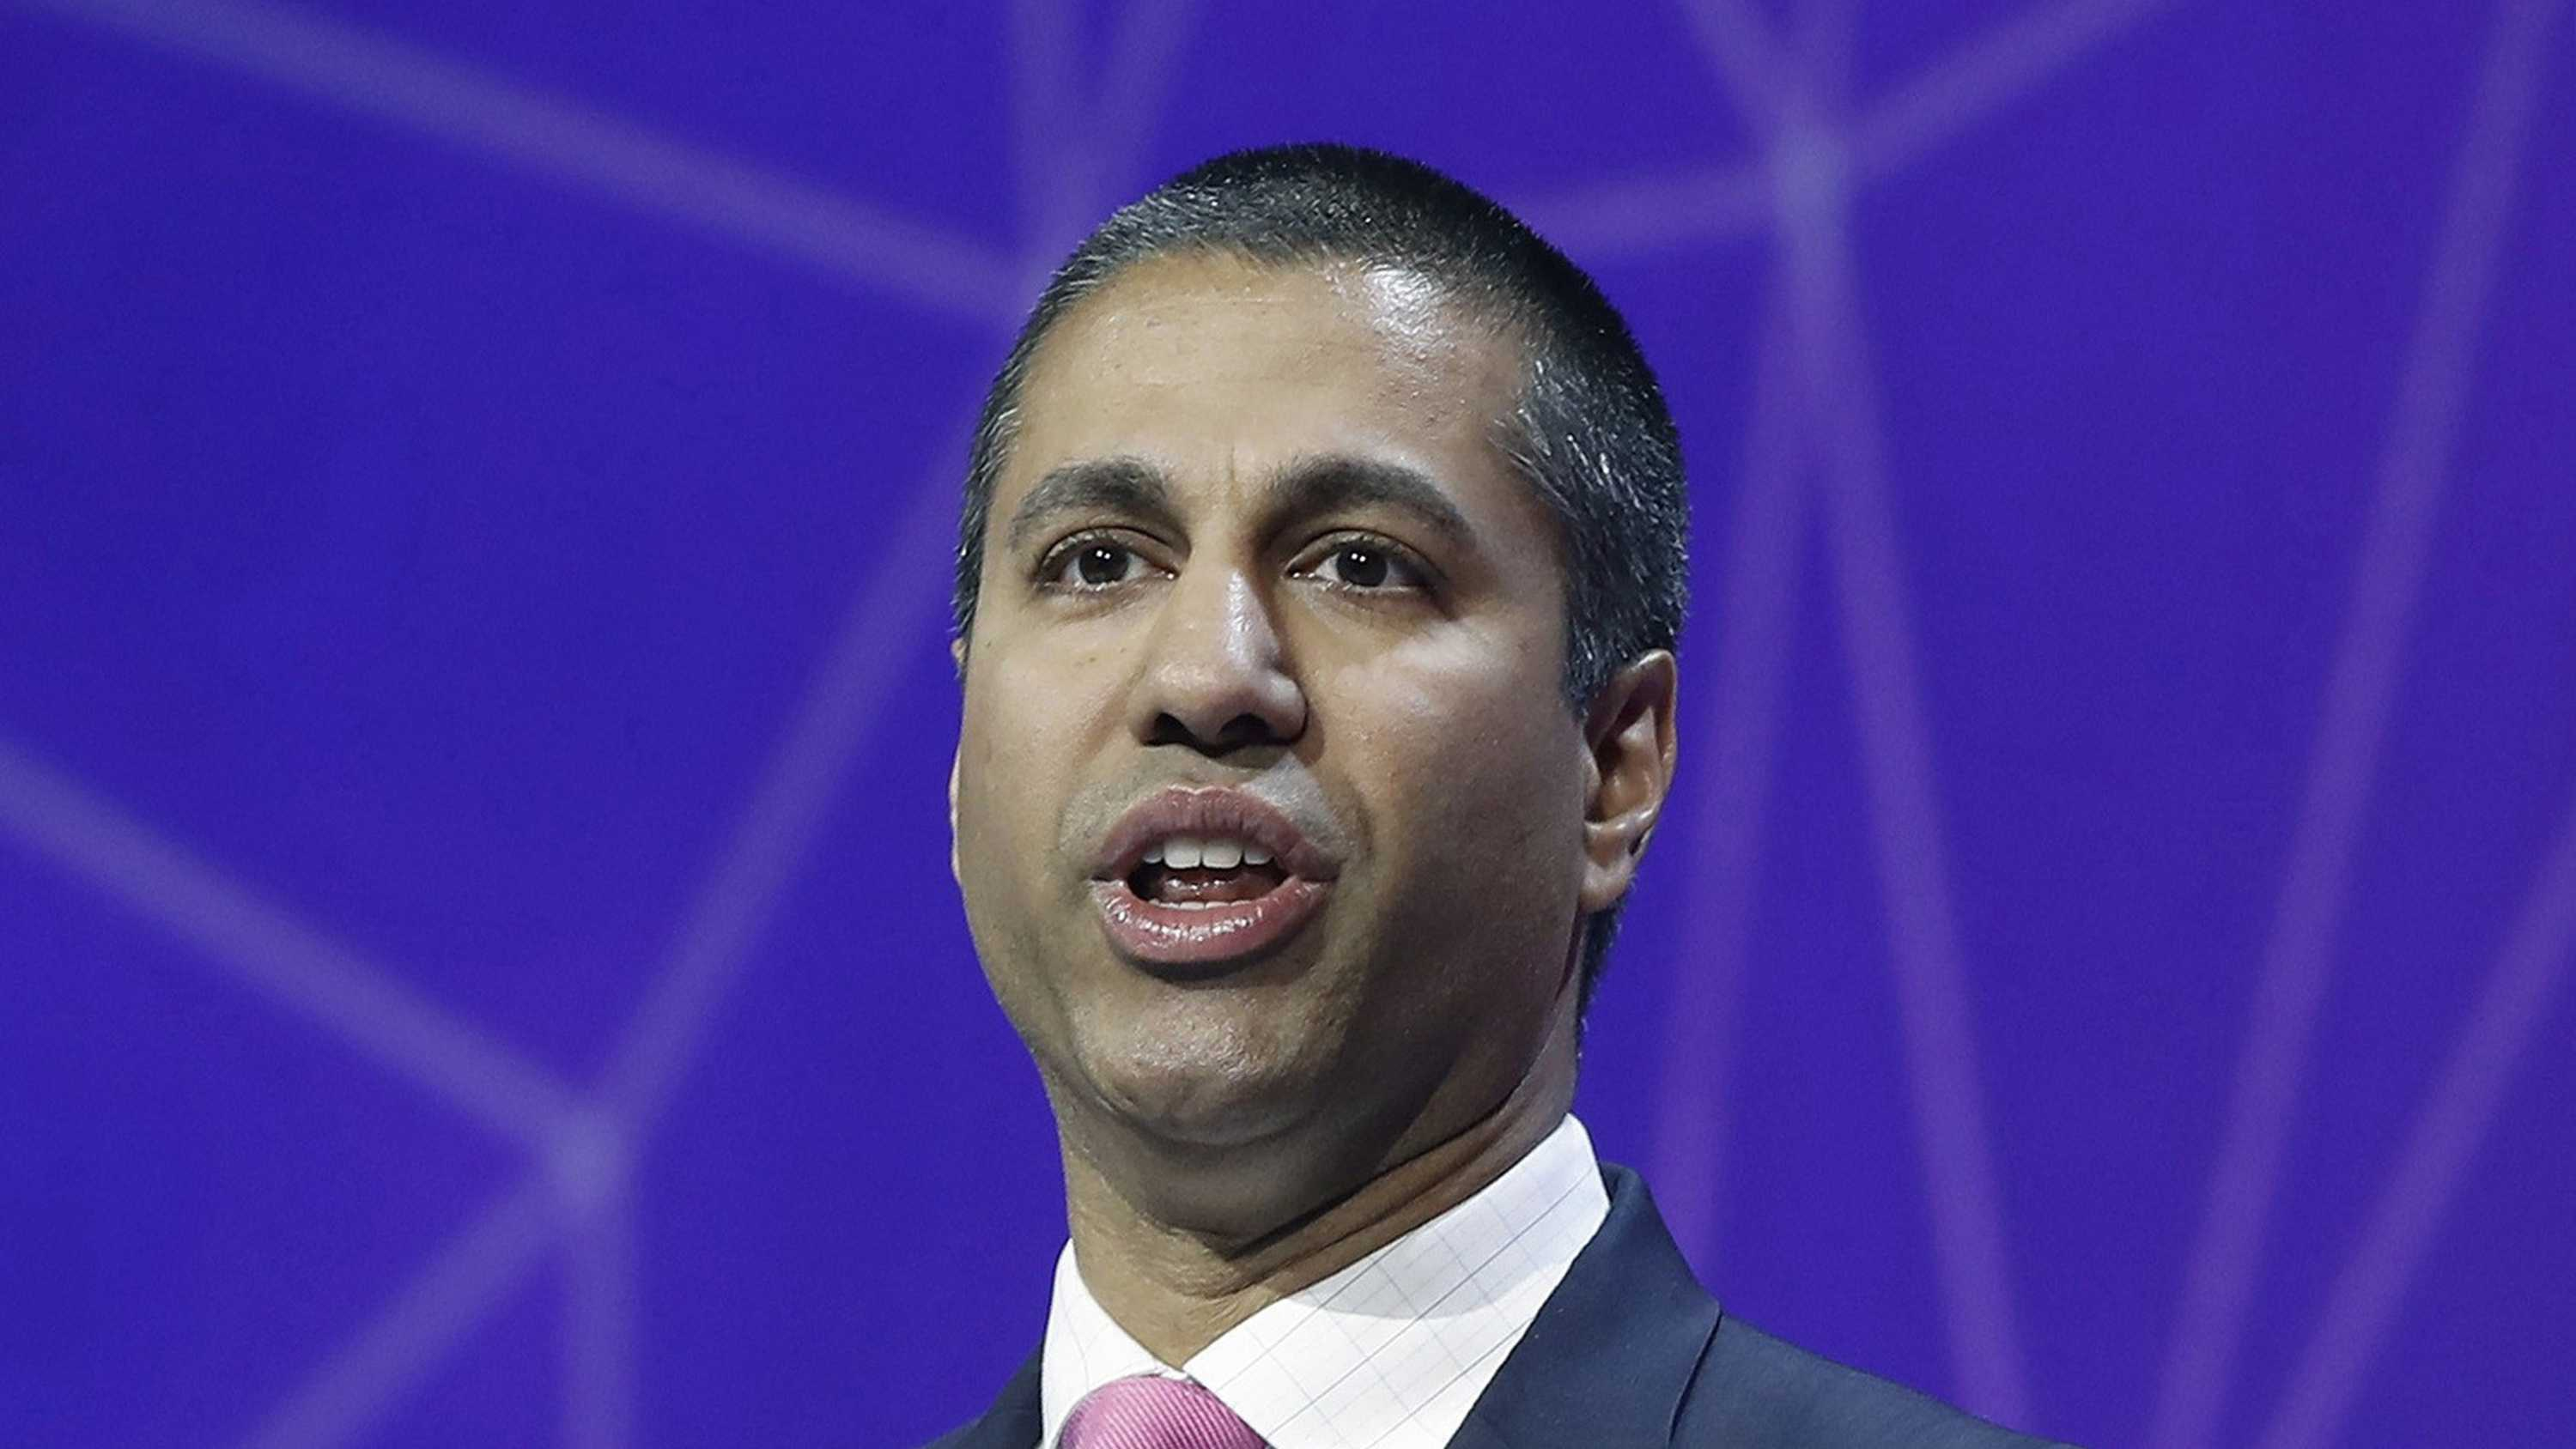 Chairman of the United States Federal Communications Commission (FCC), Ajit Pai, gives a speech during a conference at the Mobile World Congress (MWC) held in Barcelona, northeastern Spain, Feb. 28, 2017. (Andreu Dalmau/EFE/Zuma Press/TNS)